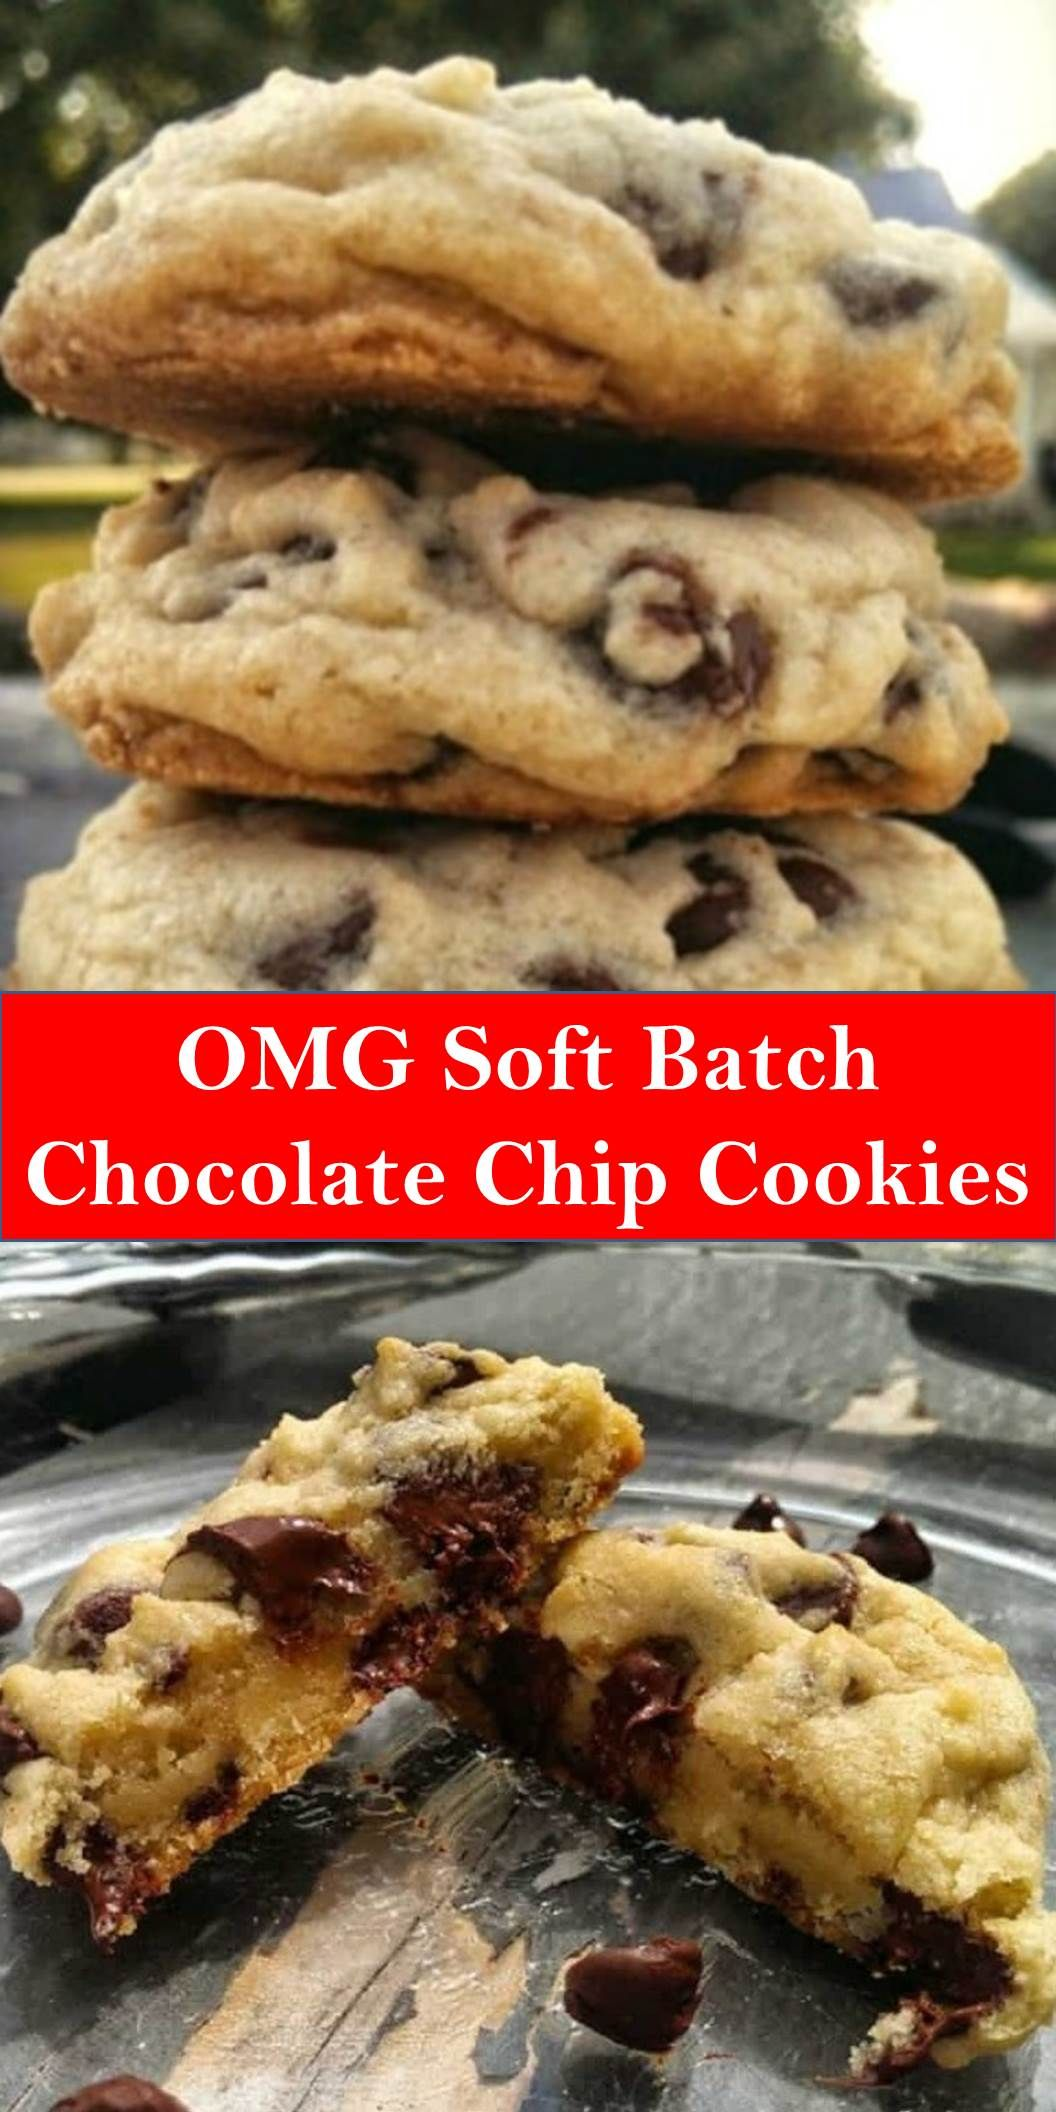 #Dessert #OMG #Soft #Batch #Chocolate #Chip #Cookies Your family's favorite food and drink ! OMG Soft Batch Chocolate Chip Cookies Delectable, insane, buttery, rich, thick, soft-batch chocolate chip cookies are pure